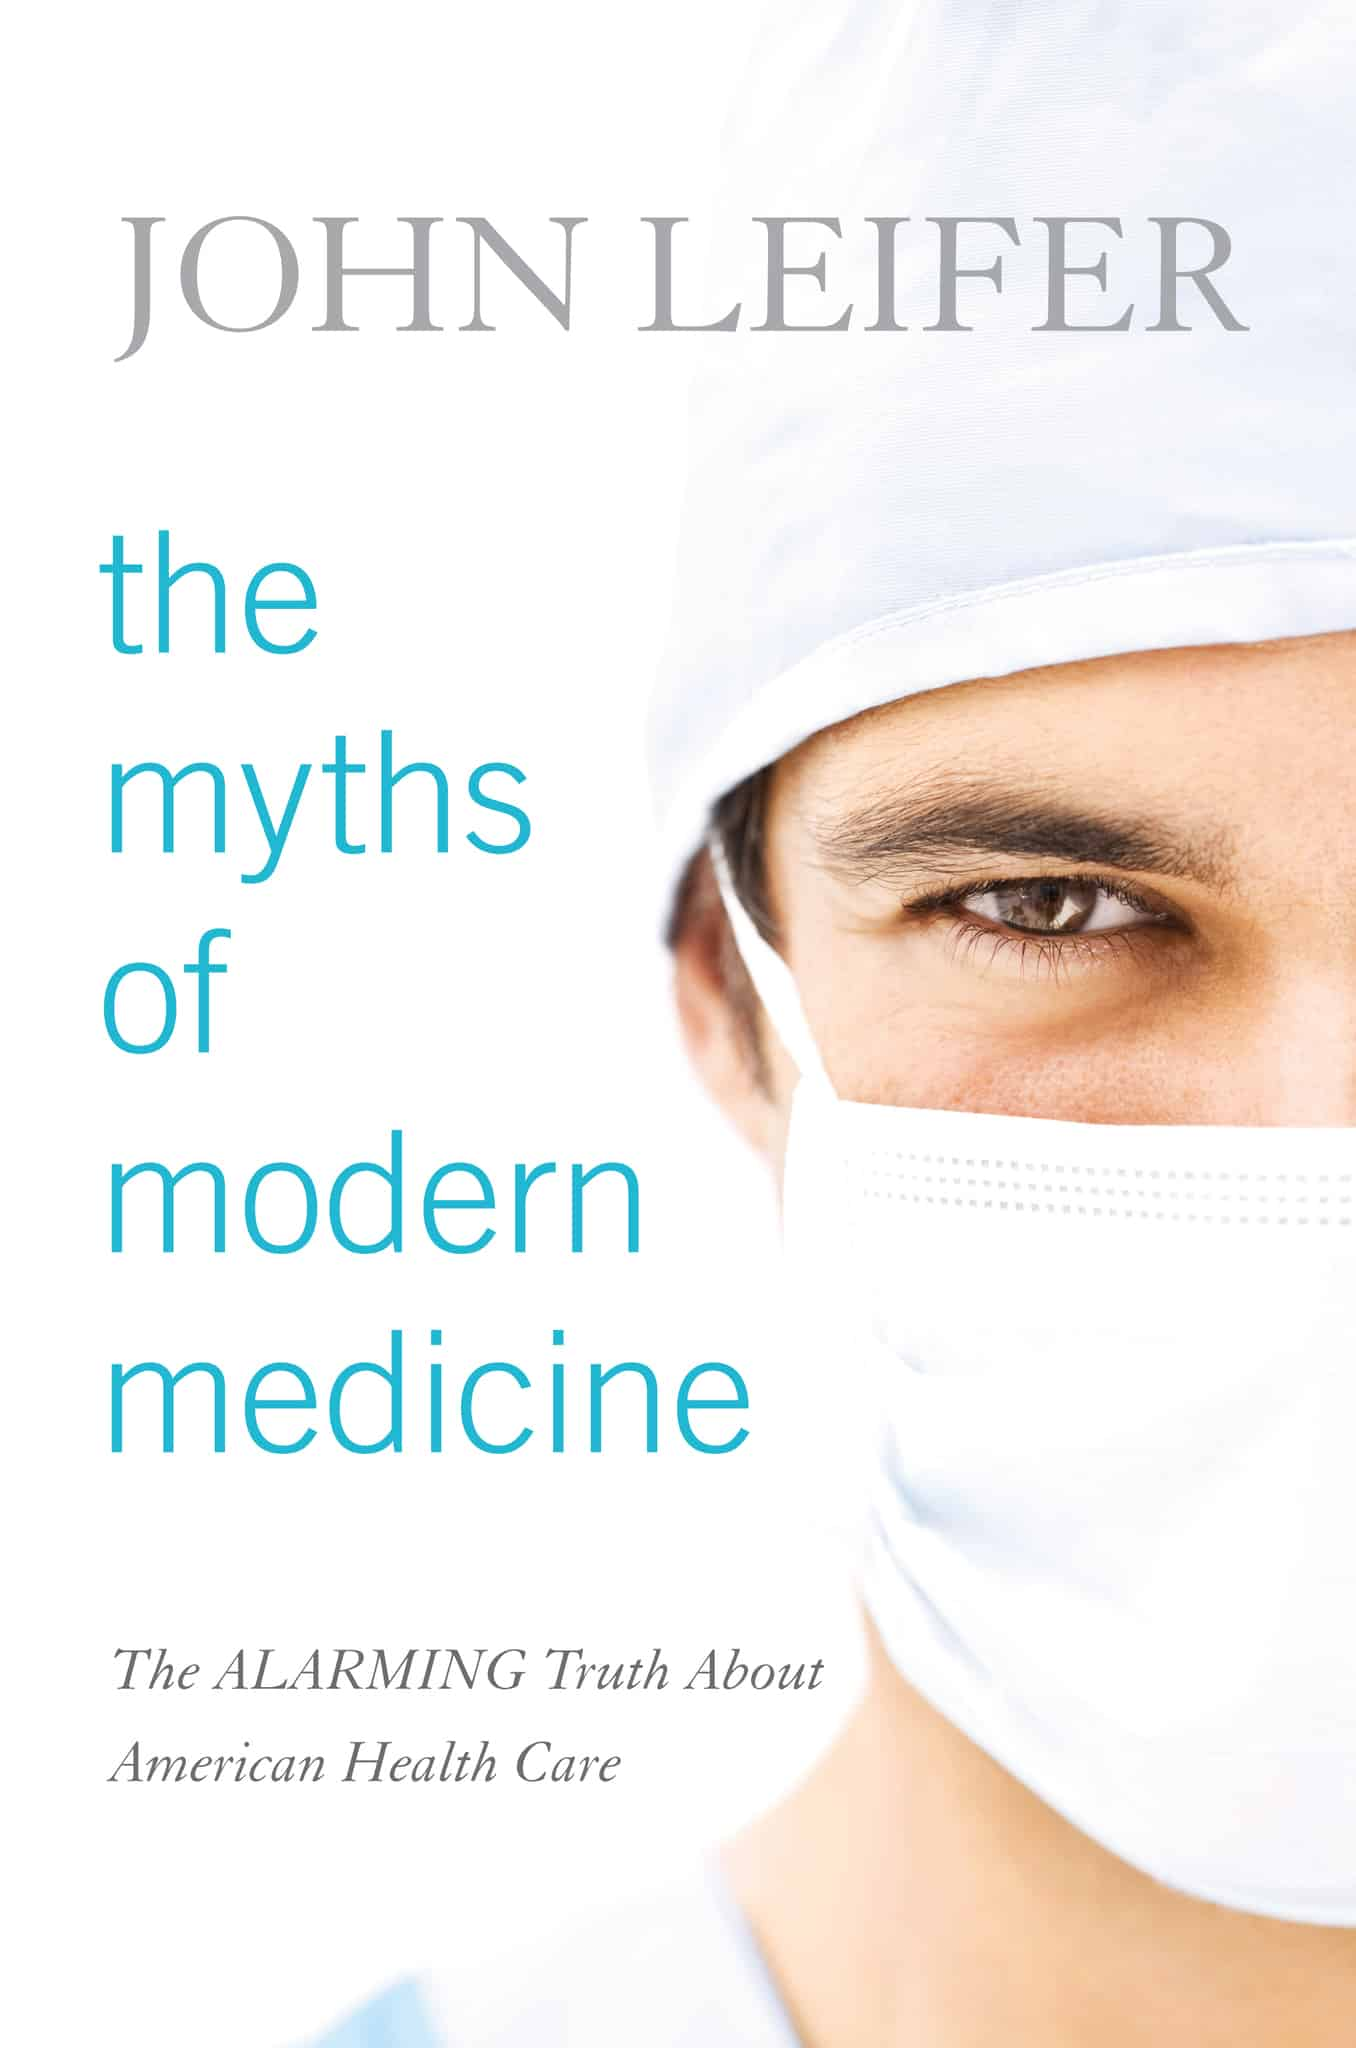 the myths of modern medicine 2014 john leifer - About